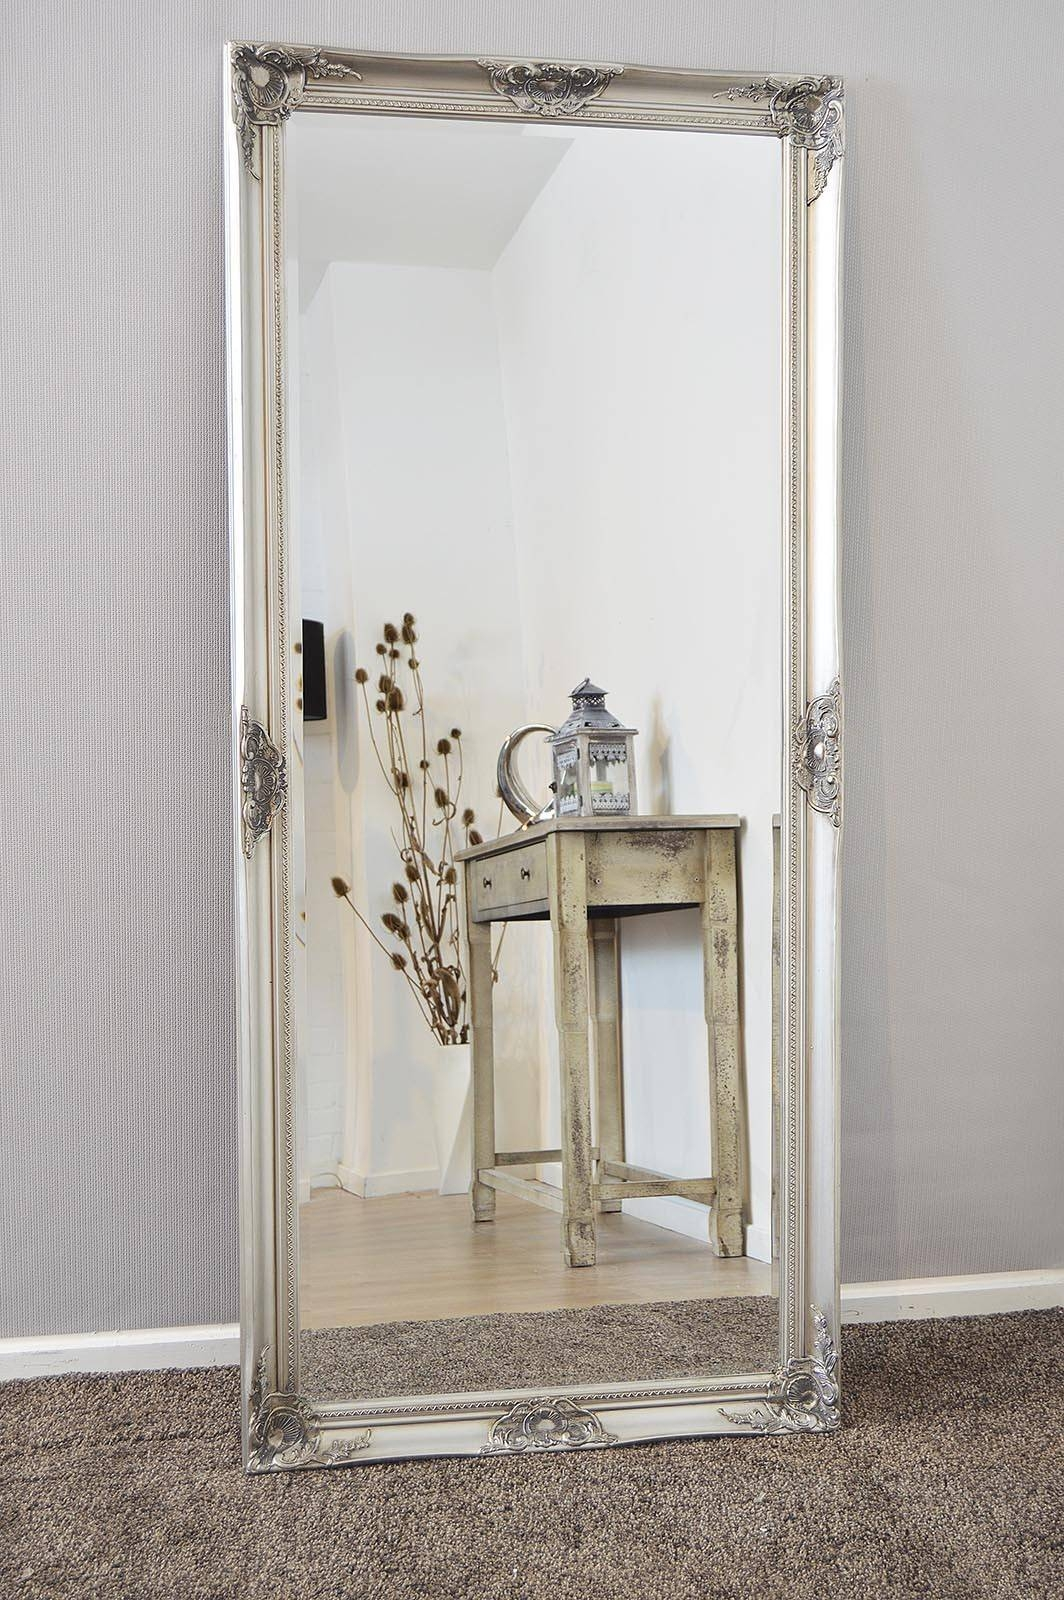 Shabby Chic Wall Mirror 88 Stunning Decor With Large Antique Intended For Large Silver Vintage Mirrors (View 11 of 15)